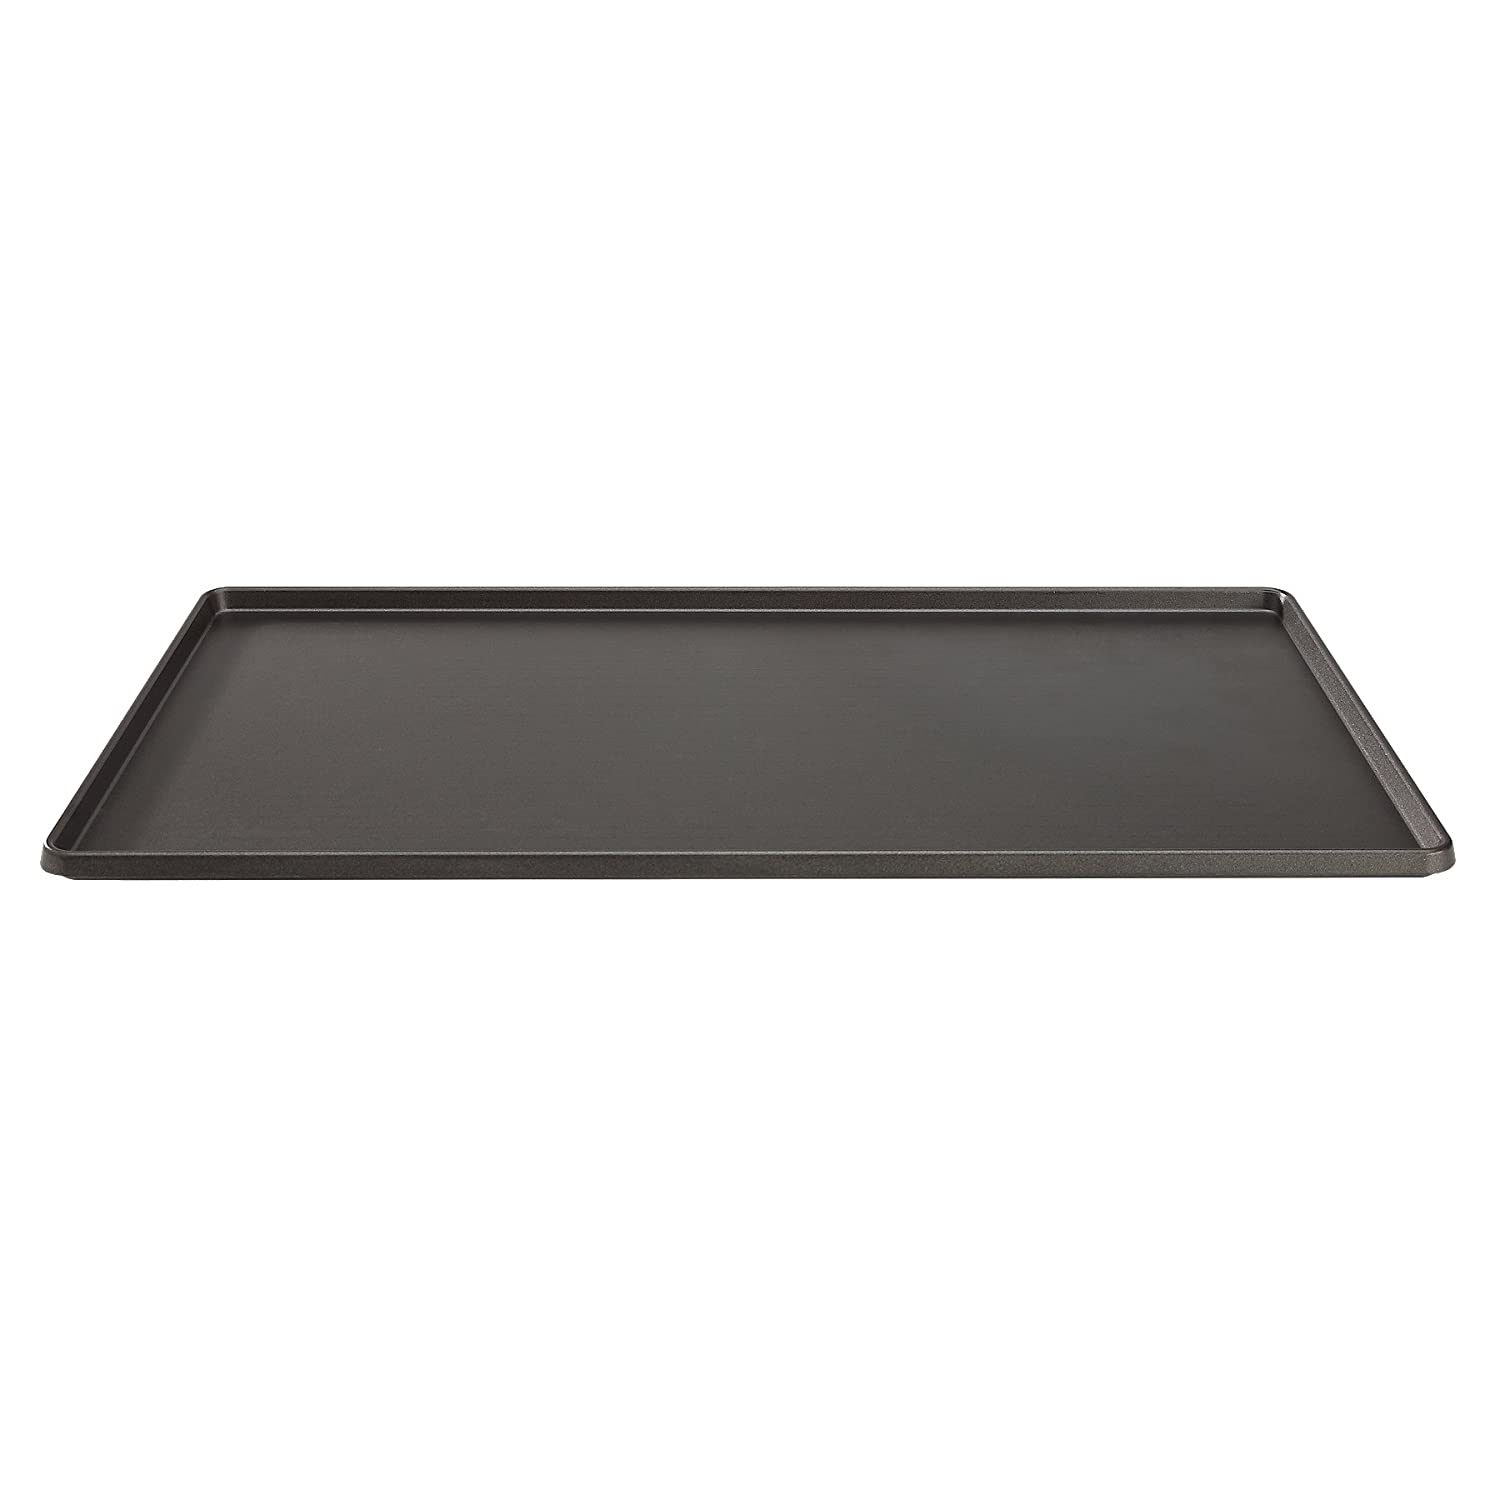 Amazon.com : Coleman Triton Series Griddle : Coleman Triton ...